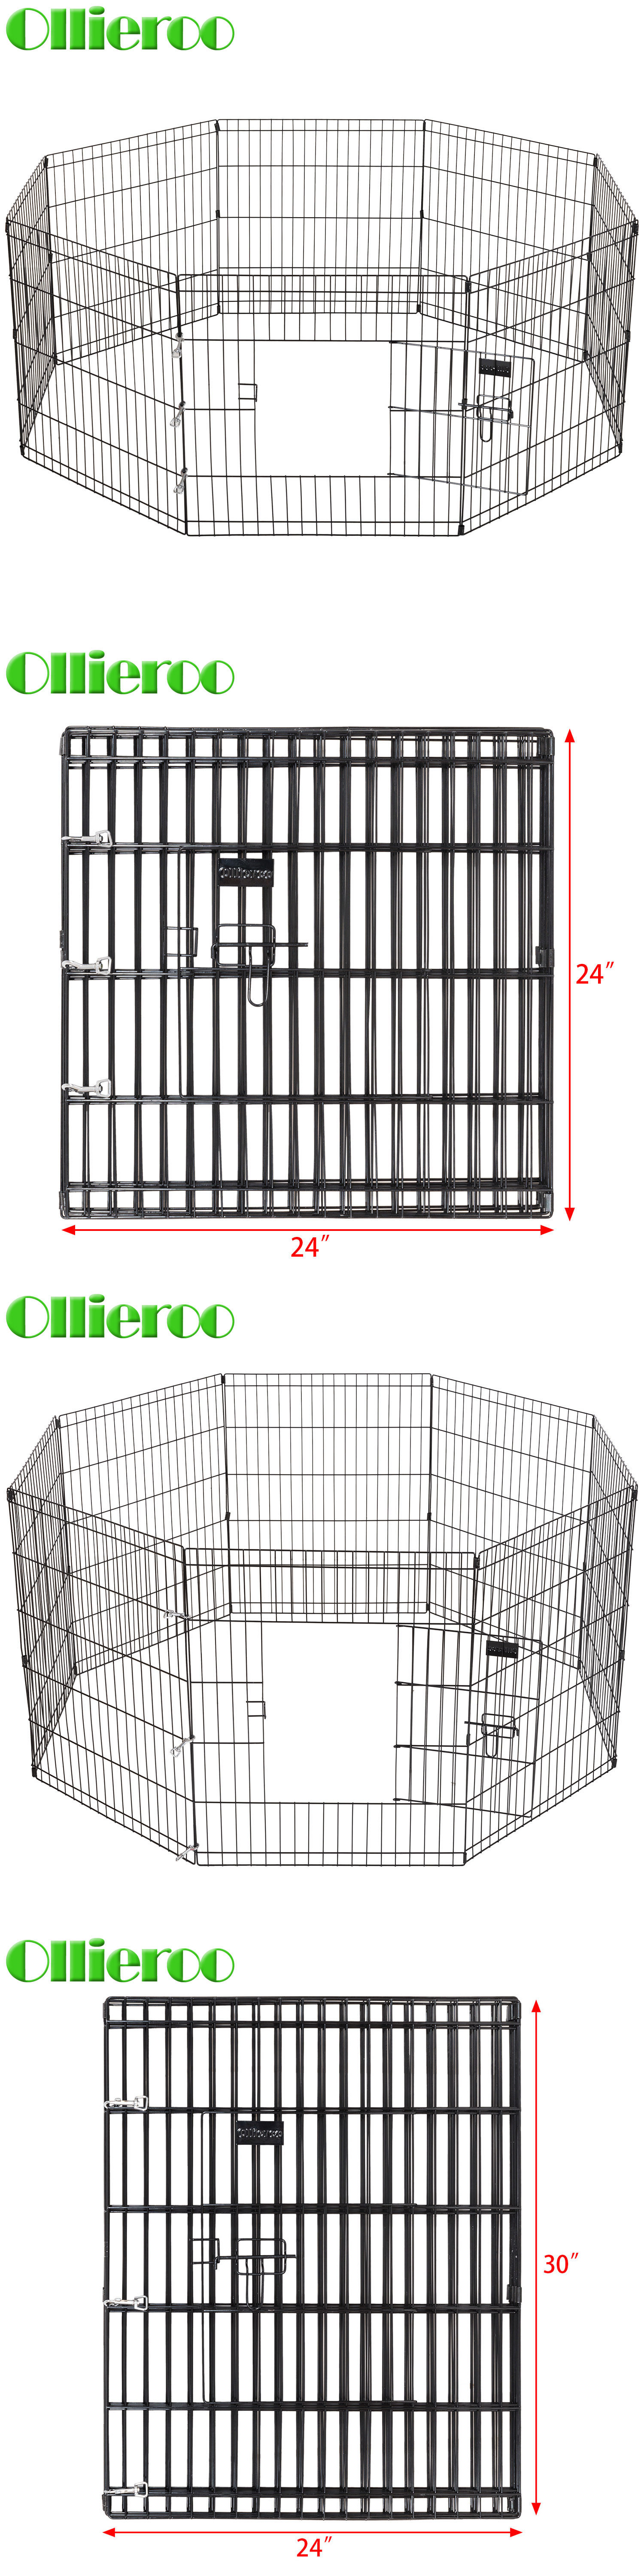 Fences and Exercise Pens 20748: 24 30 Tall Wire Fence Pet Dog ...